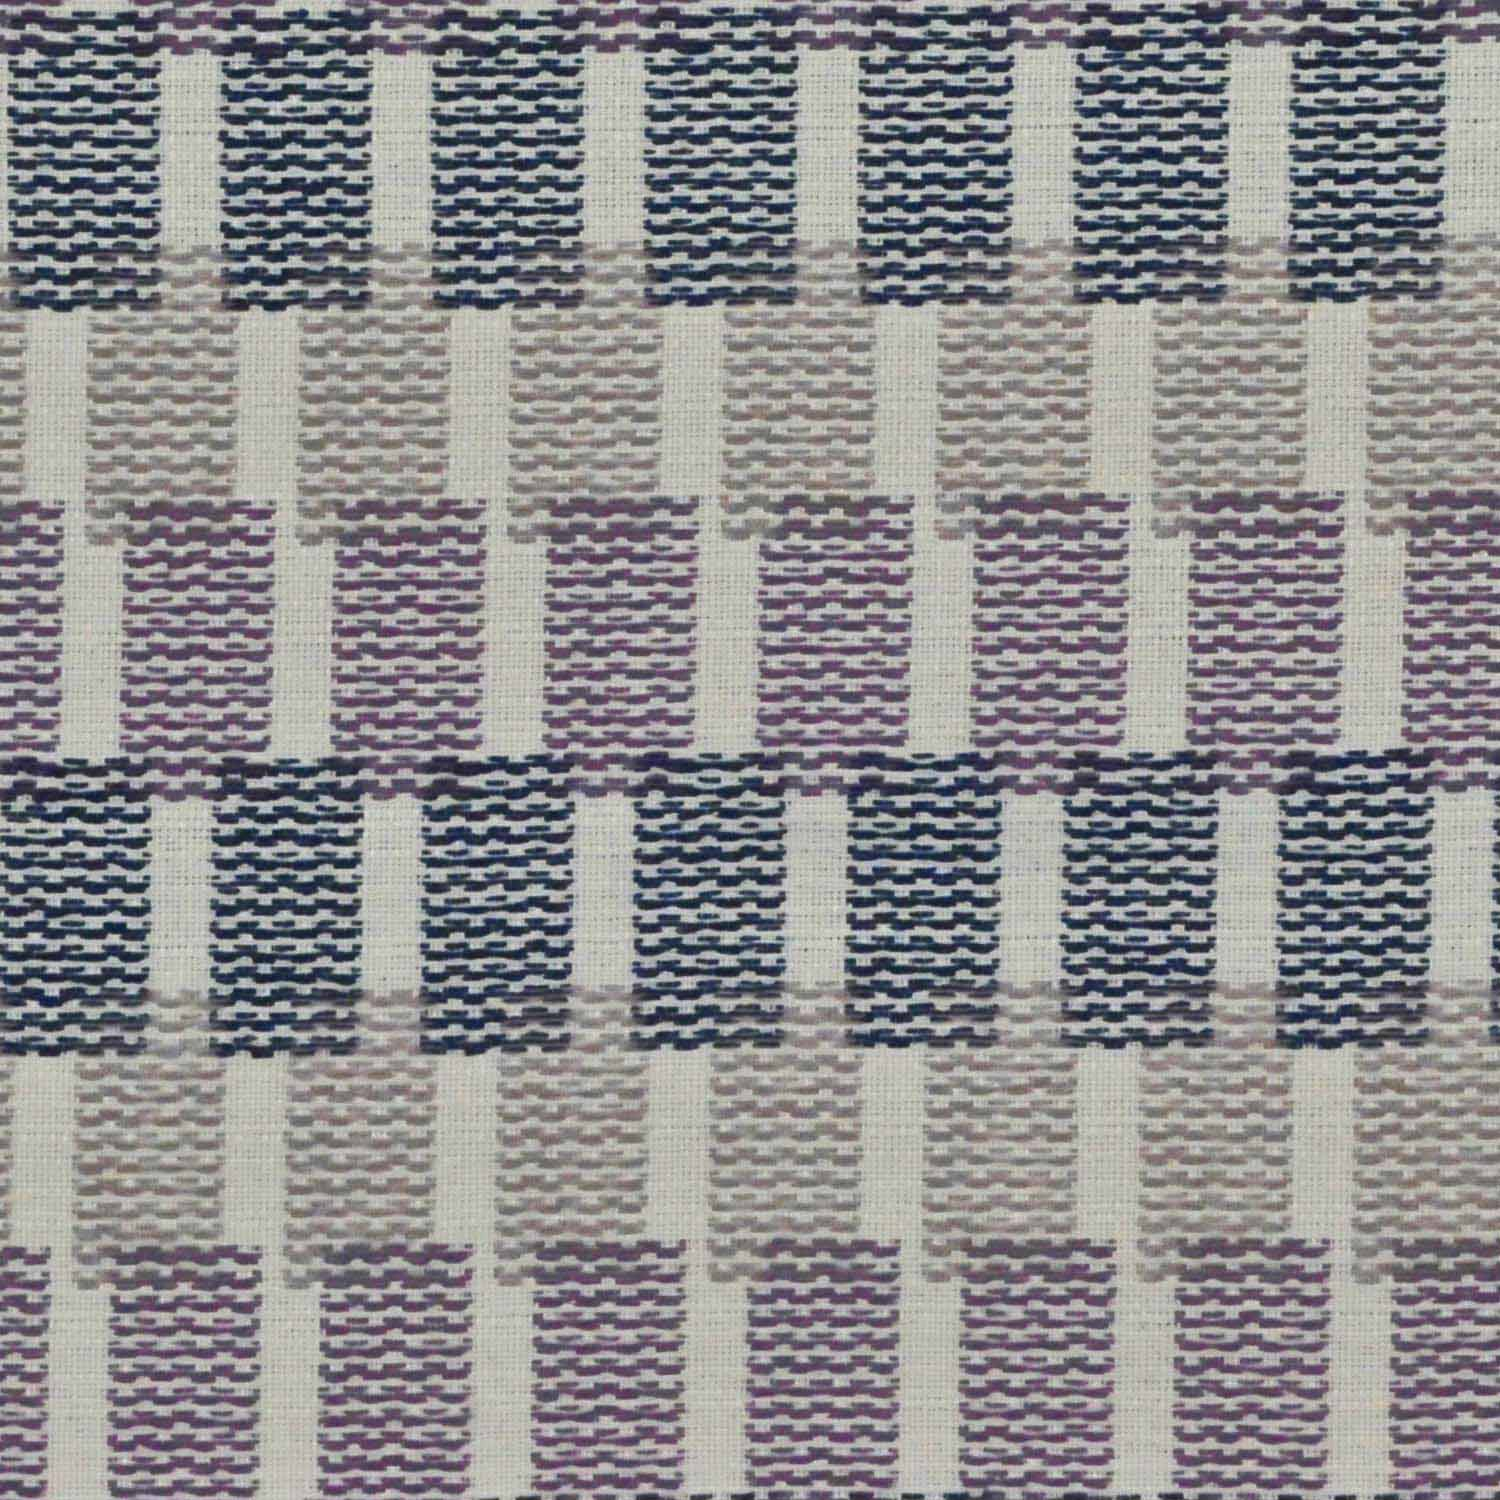 *Image from PKcontract.com (fabric name 'Arcade Dusk')